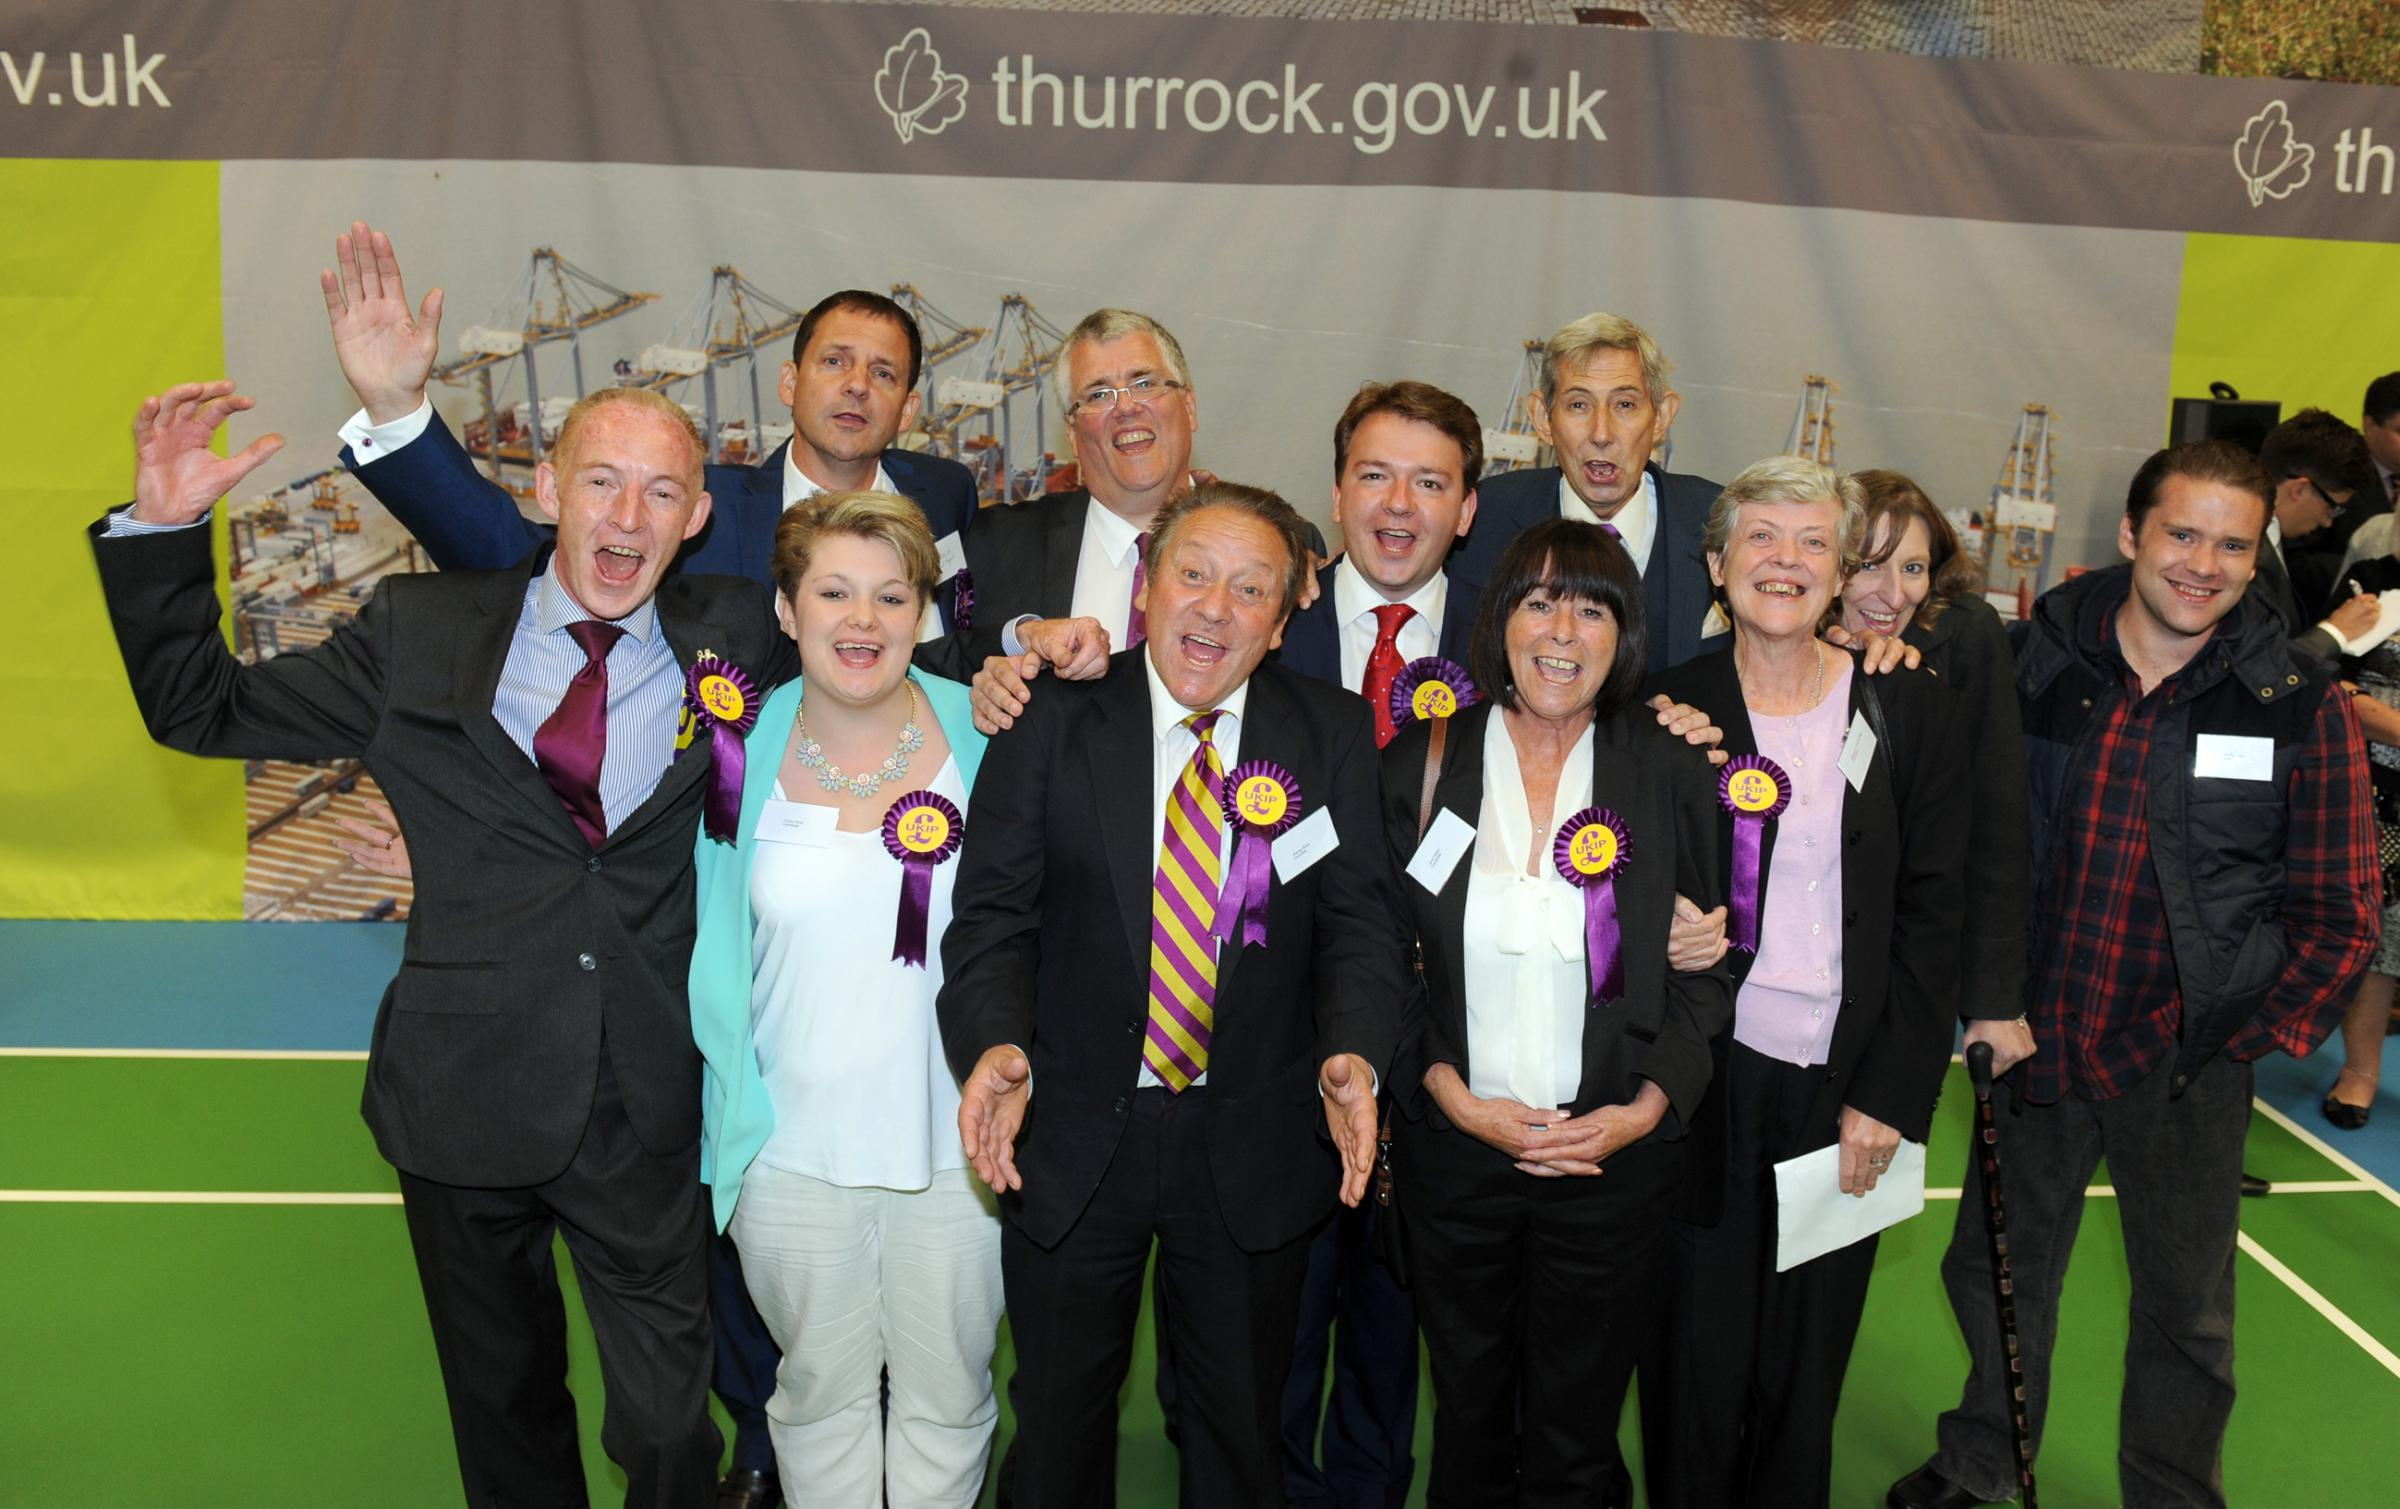 Jubilant - Thurrock Ukip members enjoy a successful night